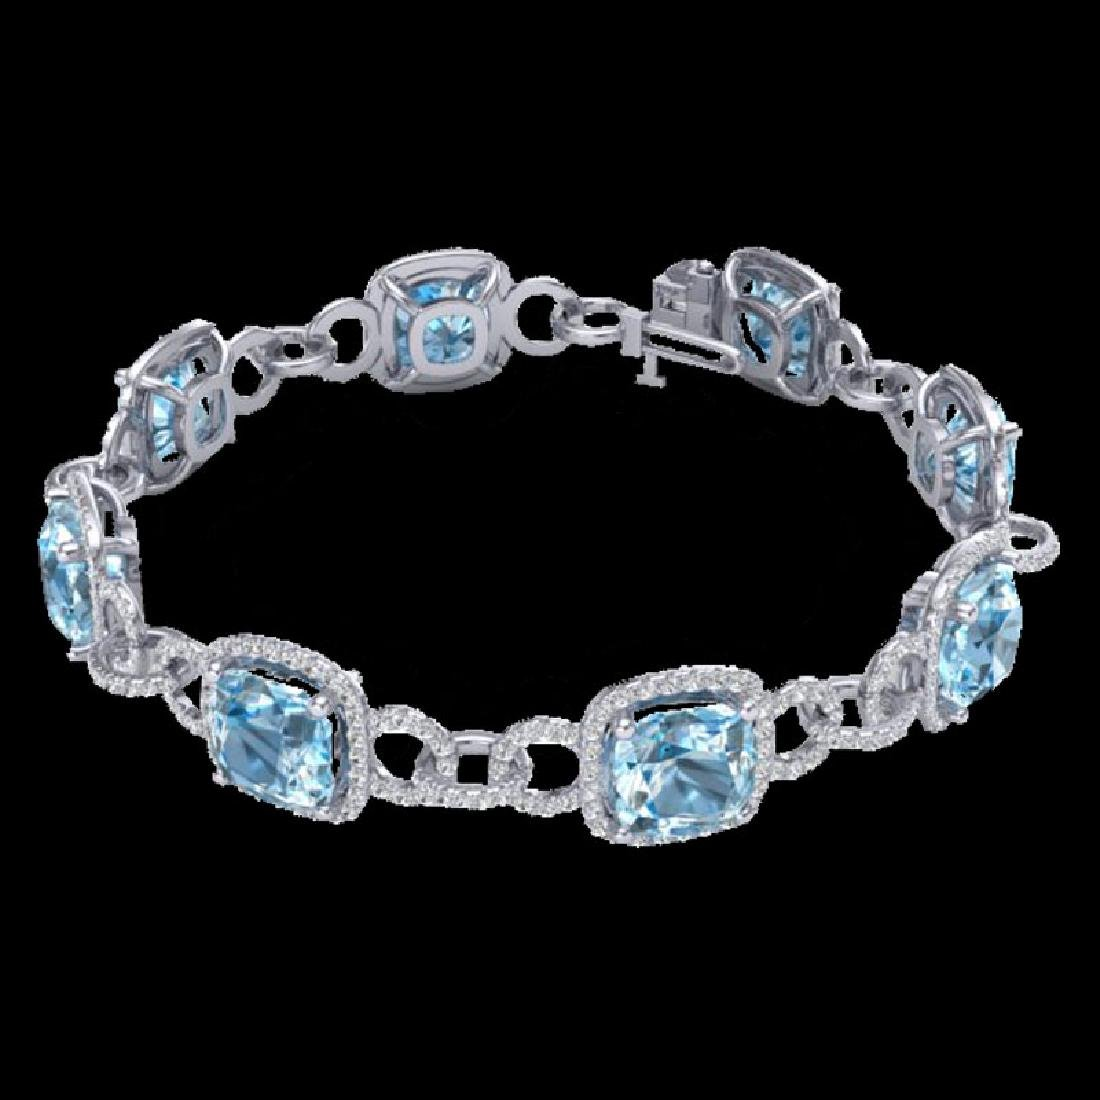 30 CTW Topaz & Micro VS/SI Diamond Bracelet 14K White - 2